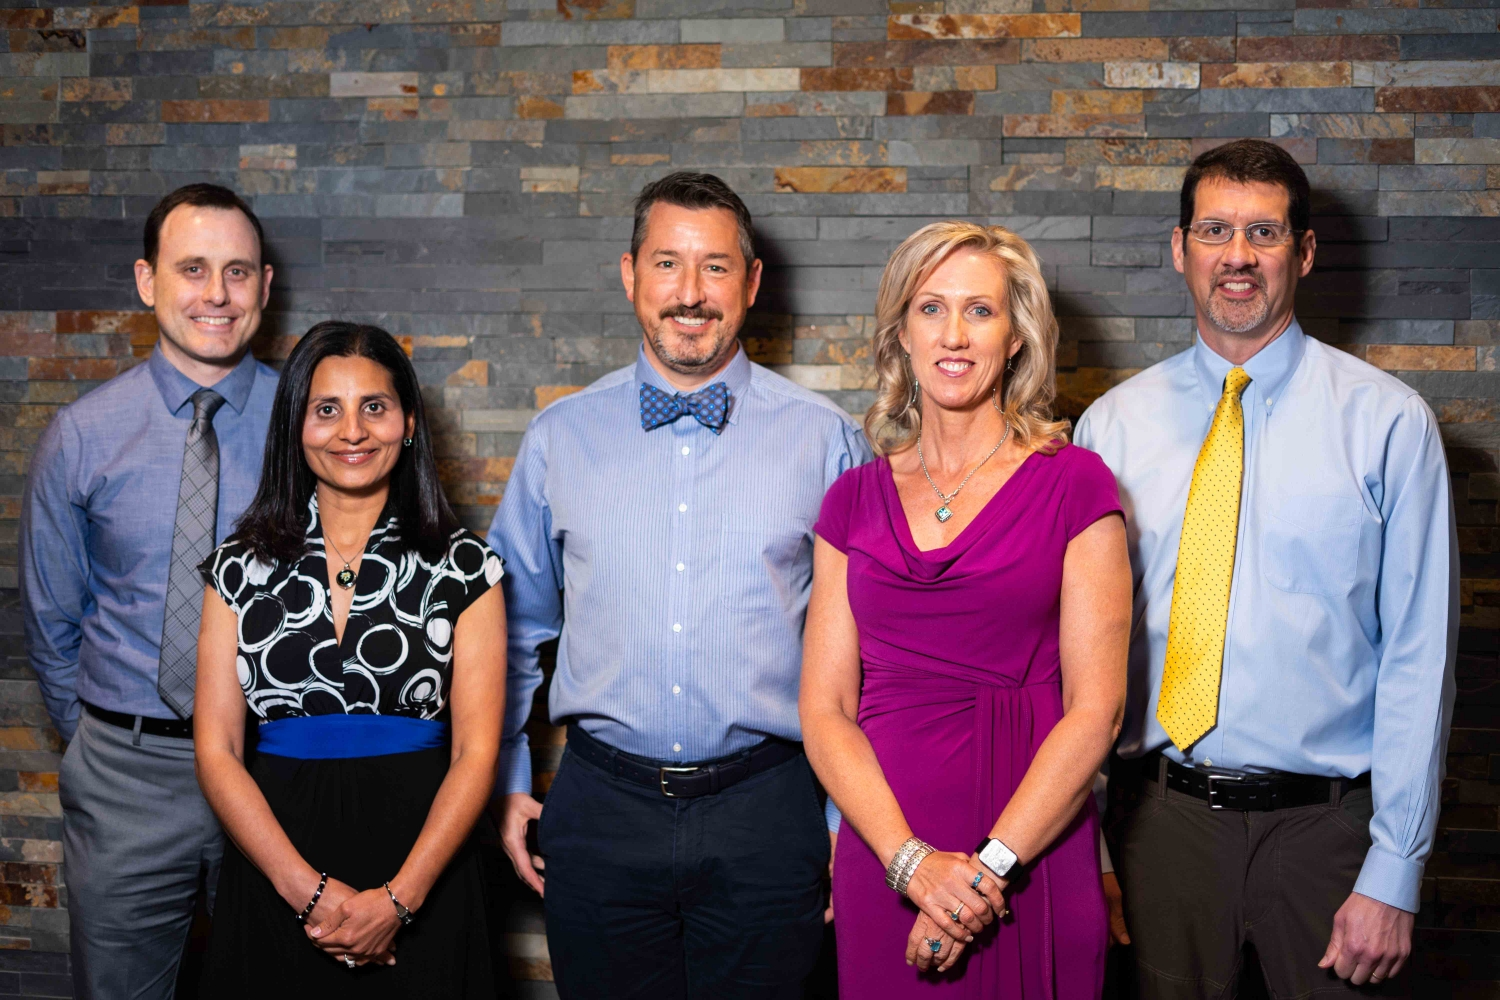 3 Neurologists & 2 Physicians Assistants from Asheville Neurology Specialists Standing In Front of a Wall